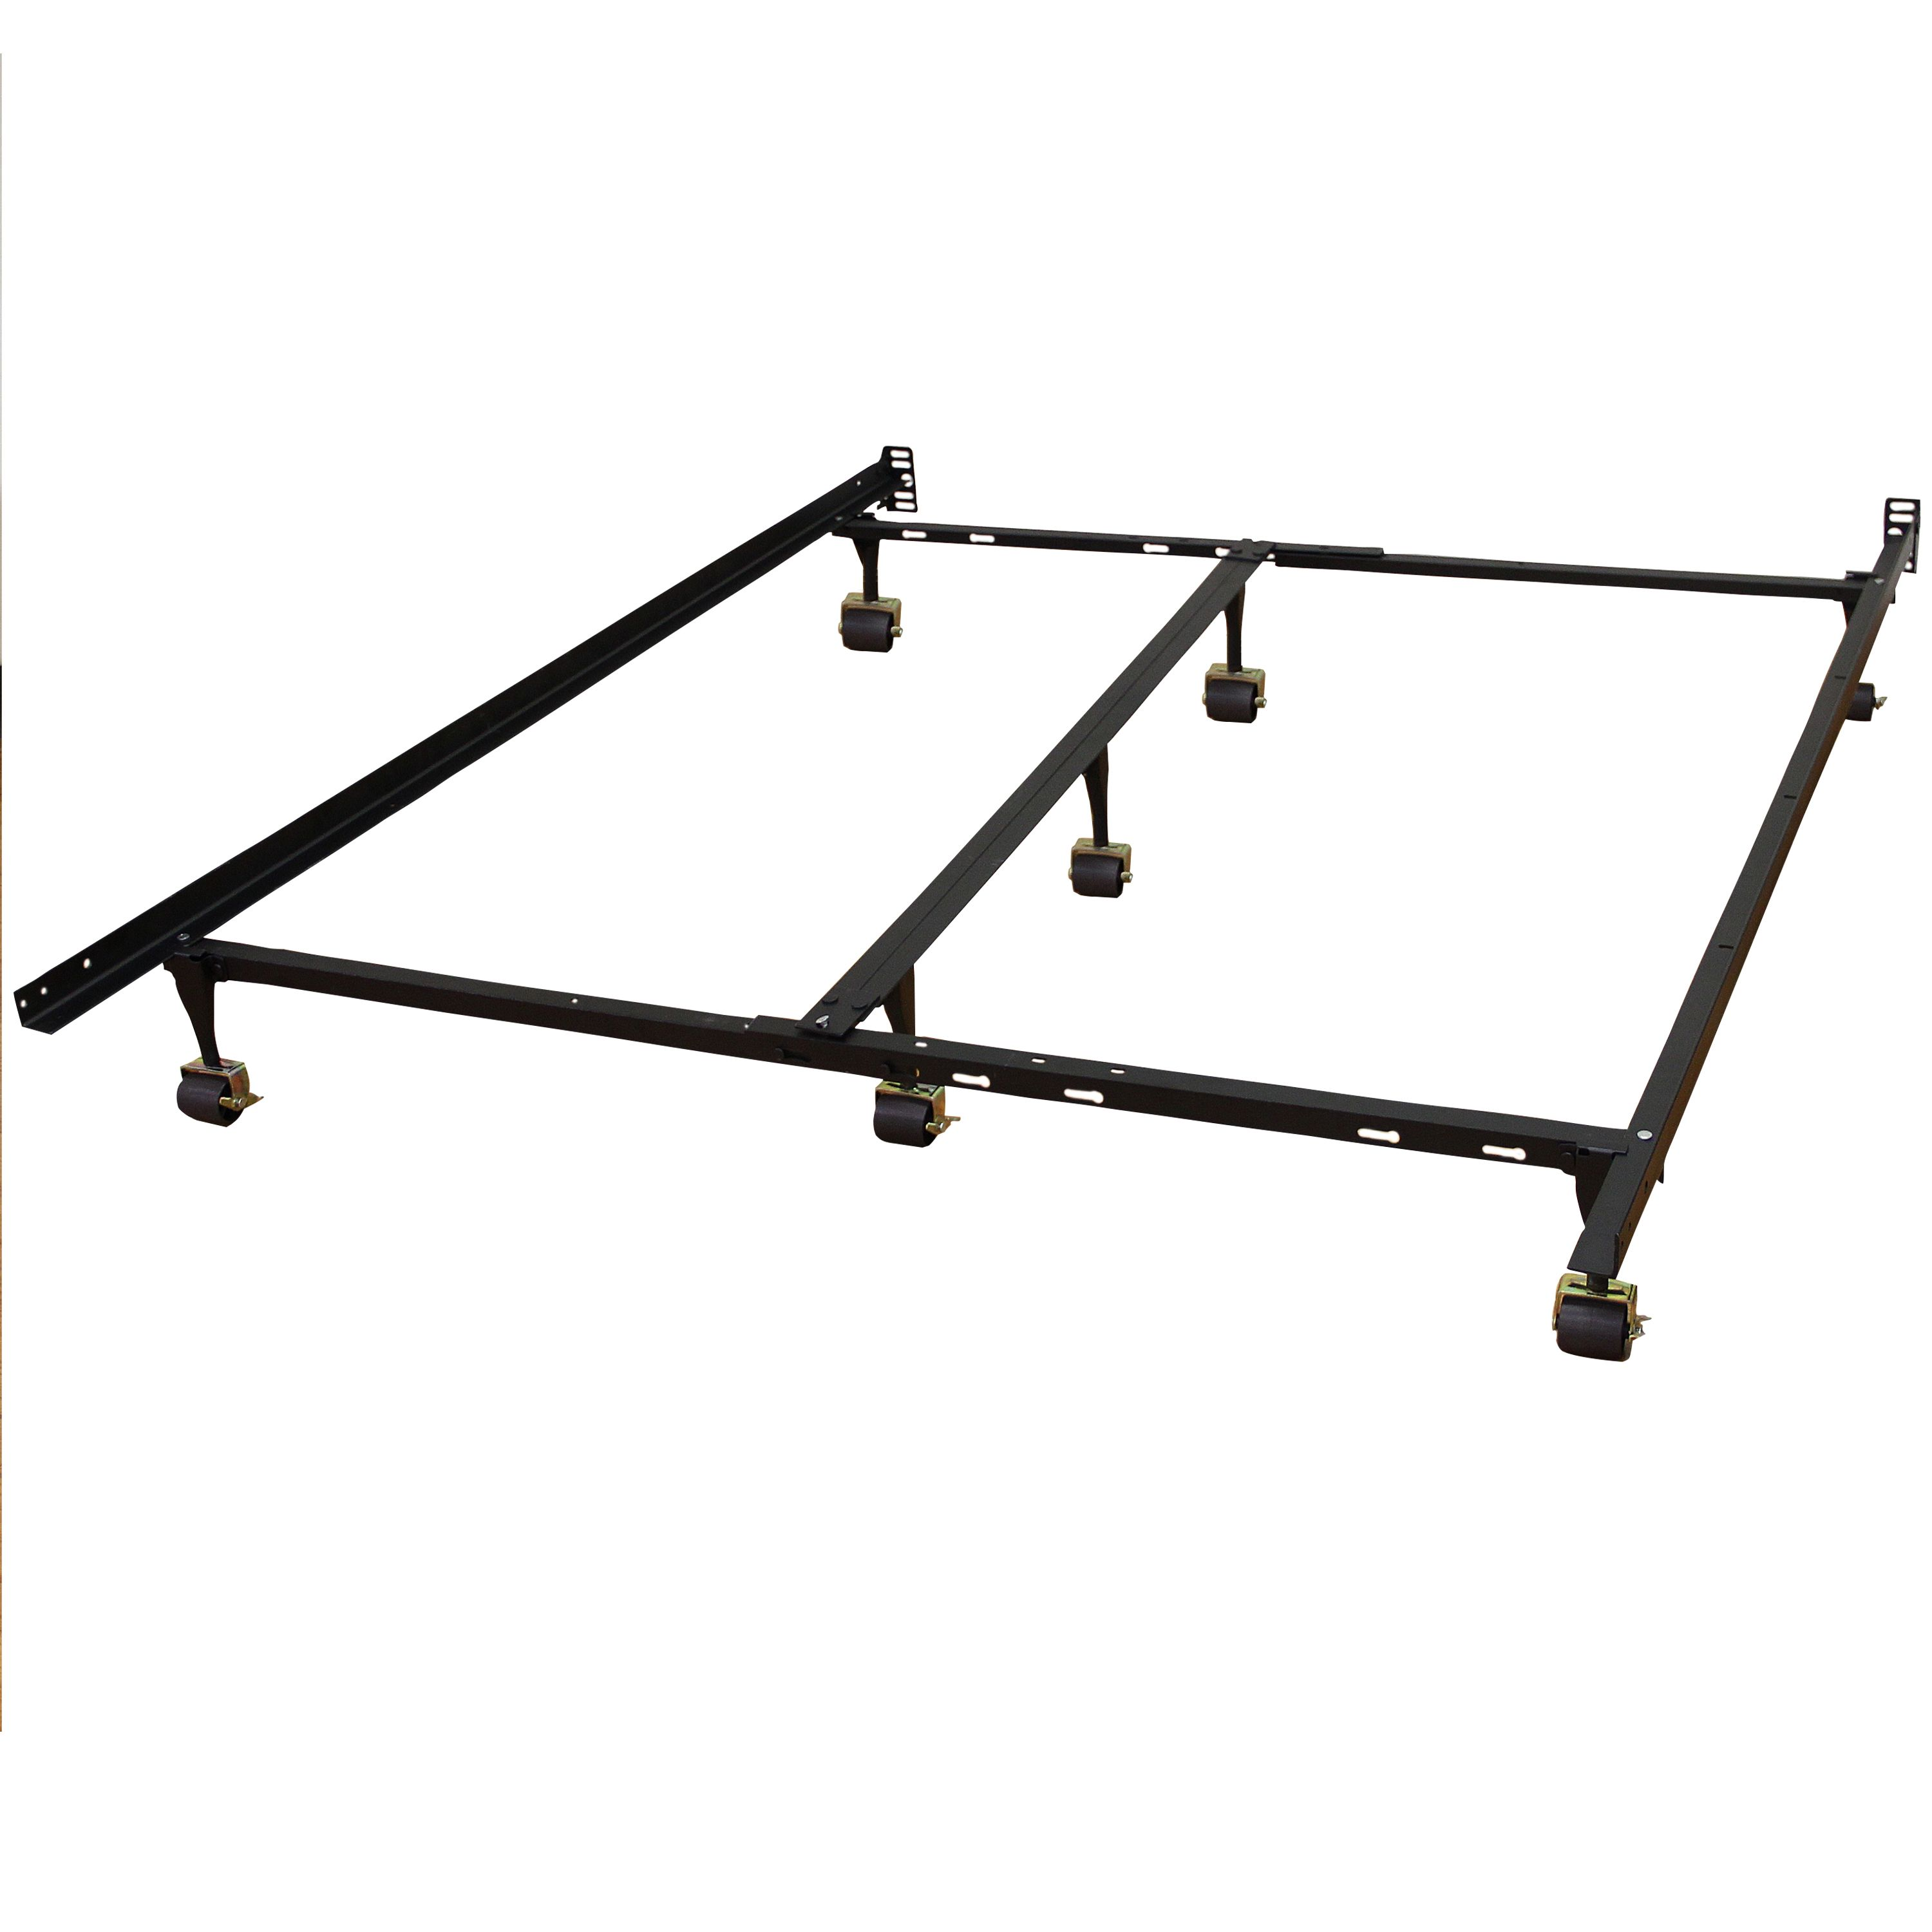 Home Adjustable bed frame, Steel bed frame, Metal beds